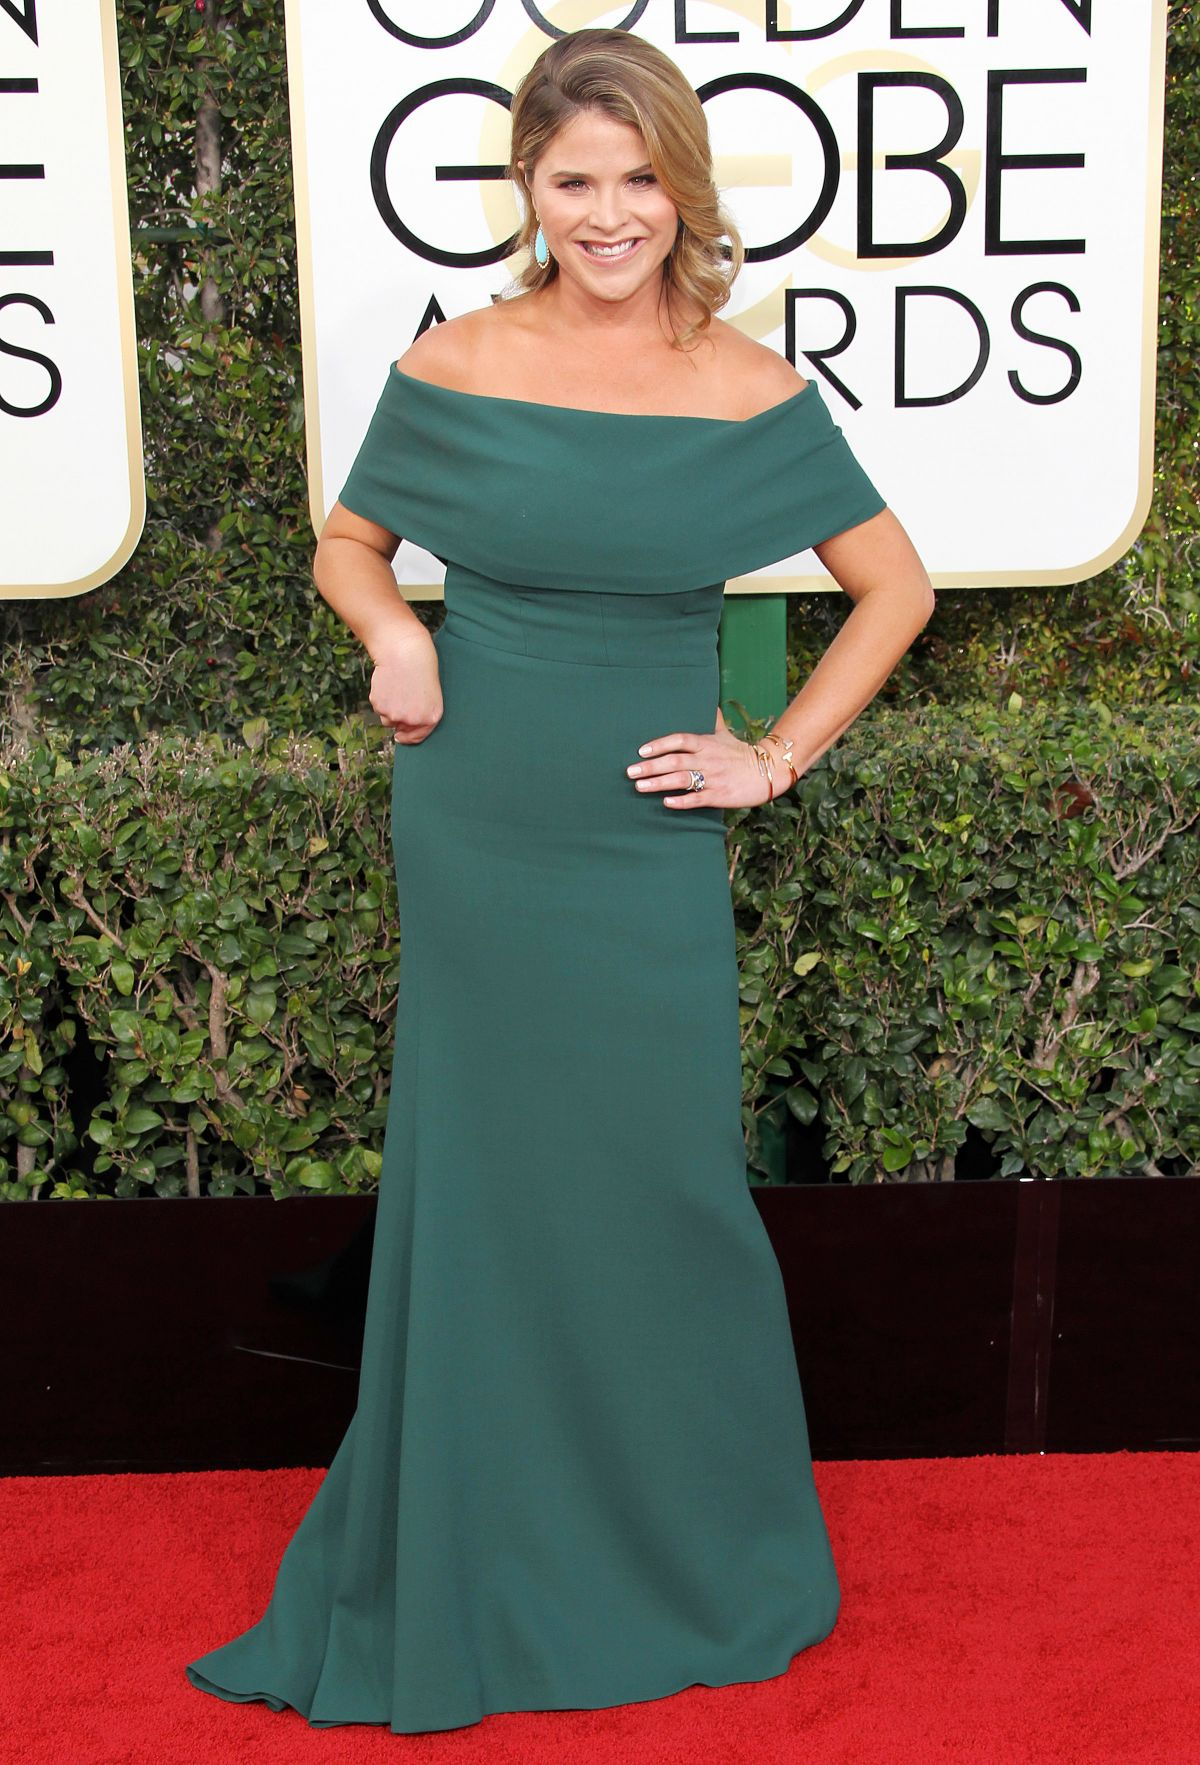 JENNA BUSH HAGER at 74th Annual Golden Globe Awards in Beverly Hills 01/08/2017